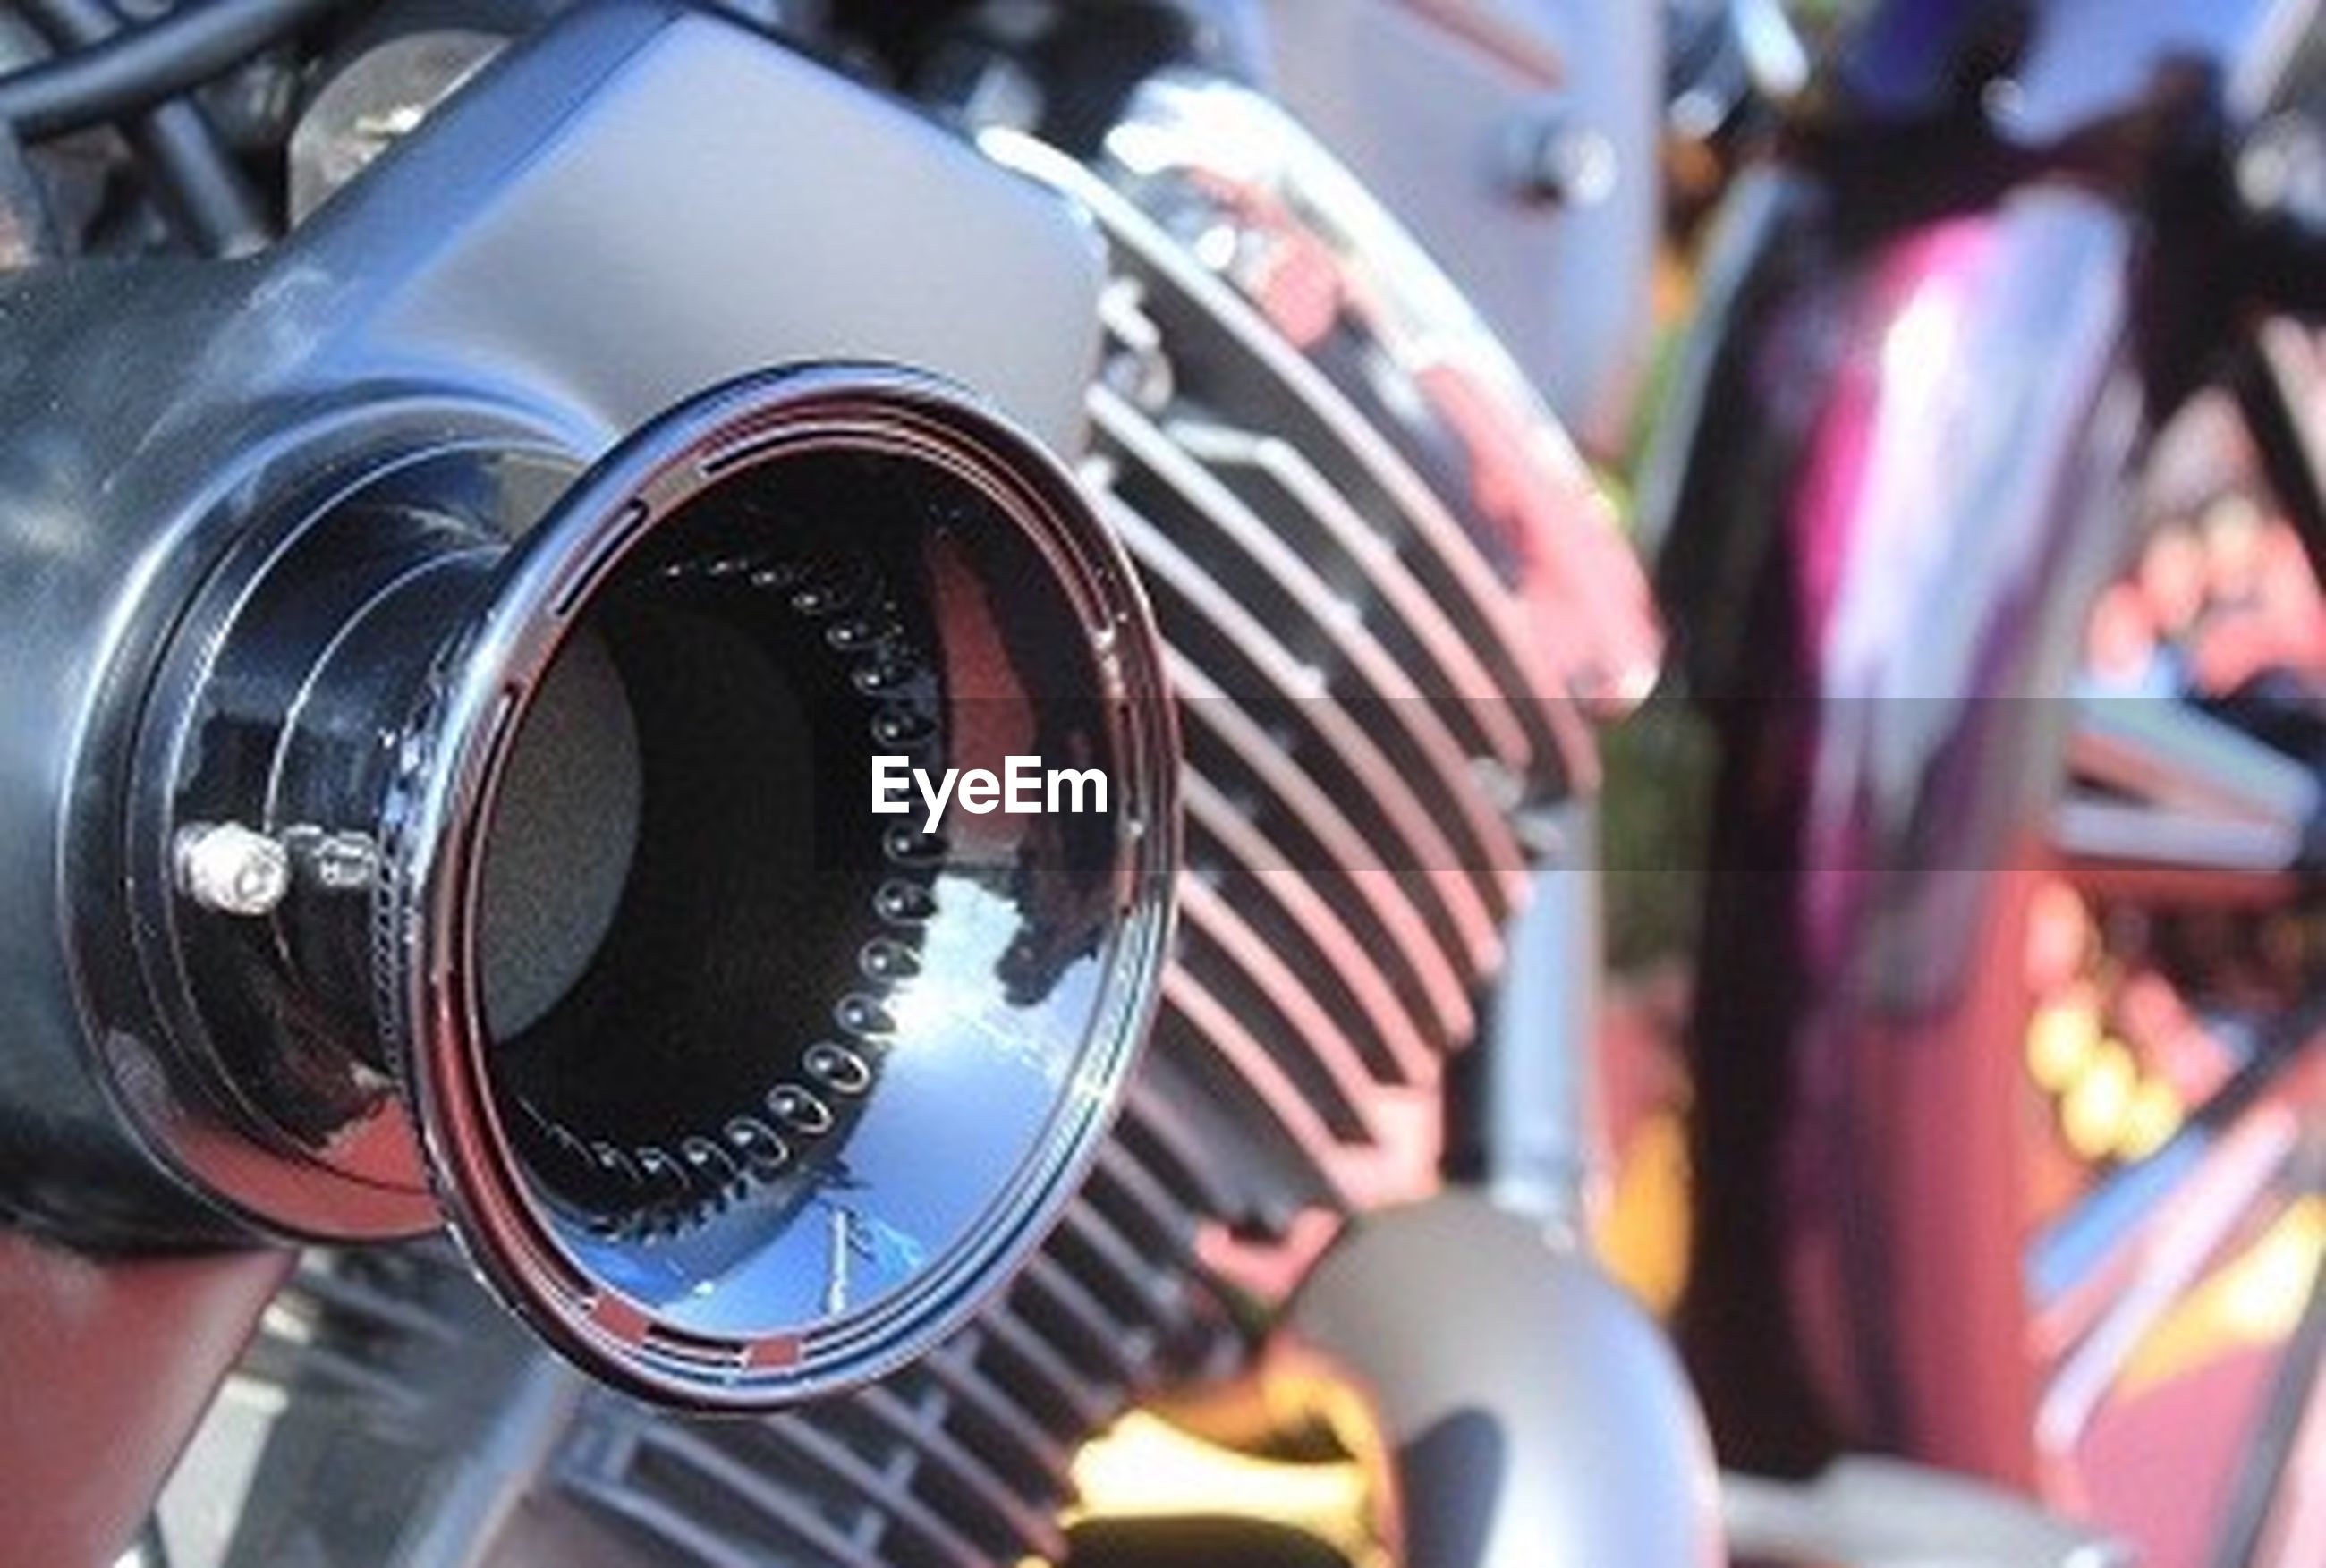 focus on foreground, close-up, land vehicle, selective focus, part of, mode of transport, transportation, technology, indoors, car, cropped, metal, photography themes, music, incidental people, day, travel, equipment, camera - photographic equipment